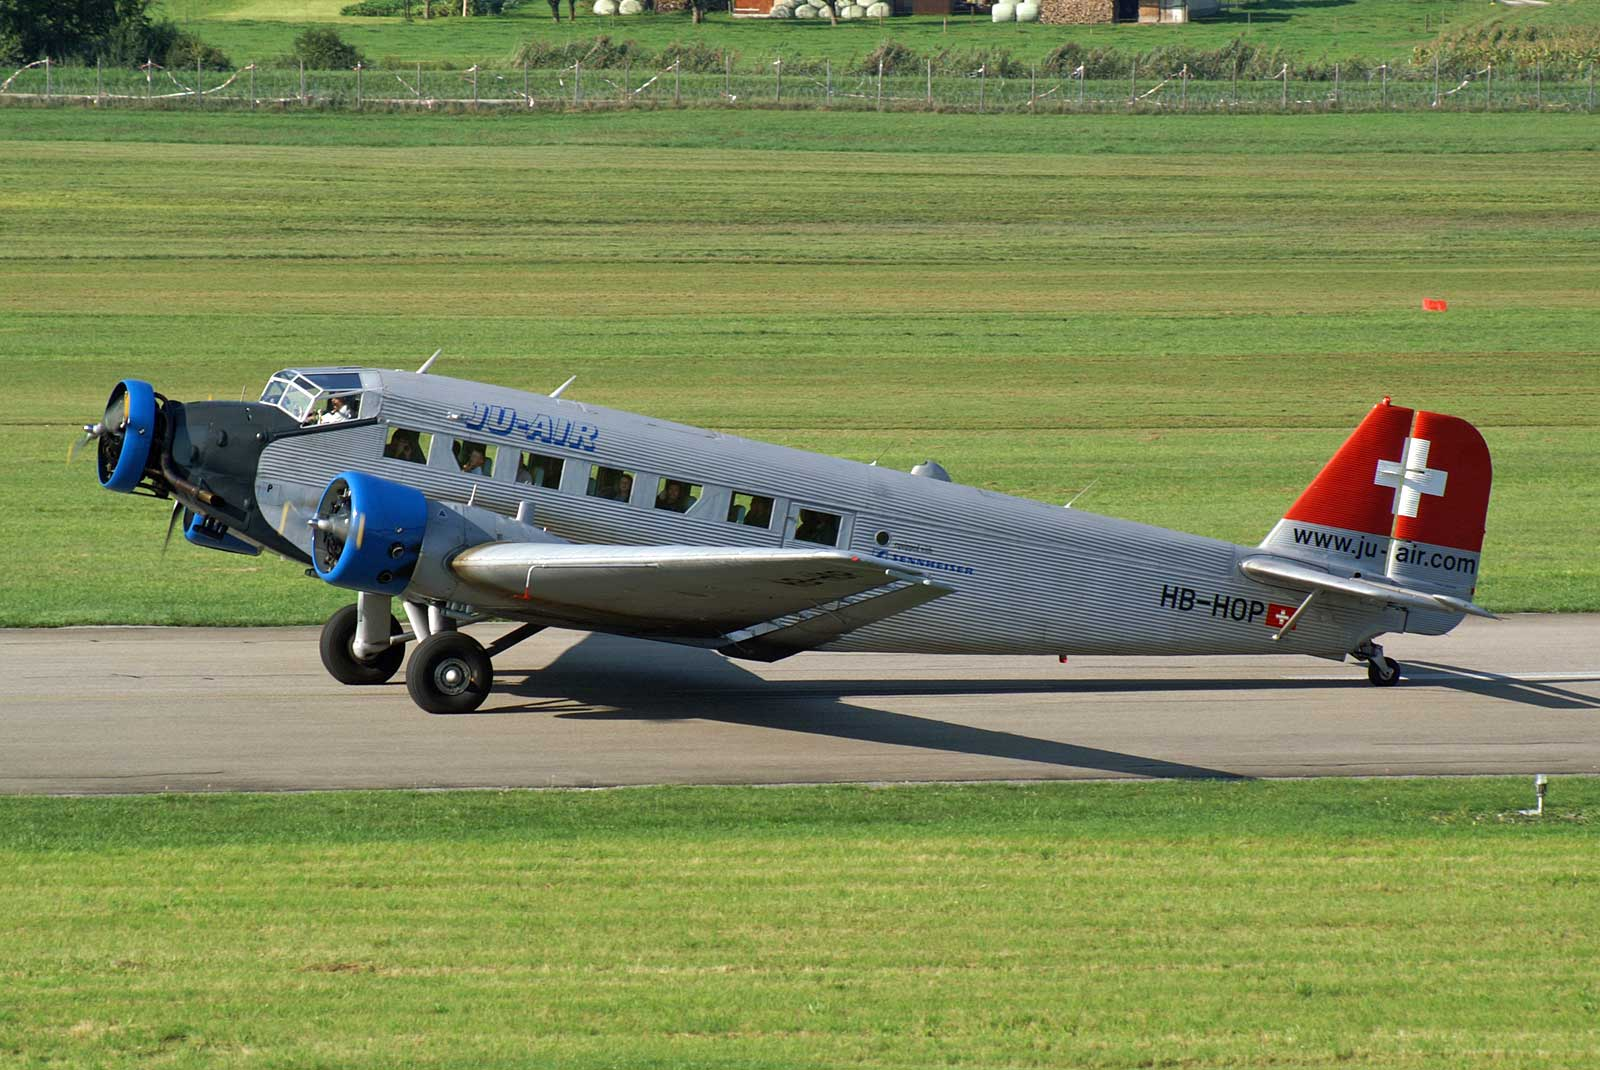 JU-AIR's Junkers Ju 52 HB-HOP in 2005. (Photo Kambu -(CC BY-2.0))-